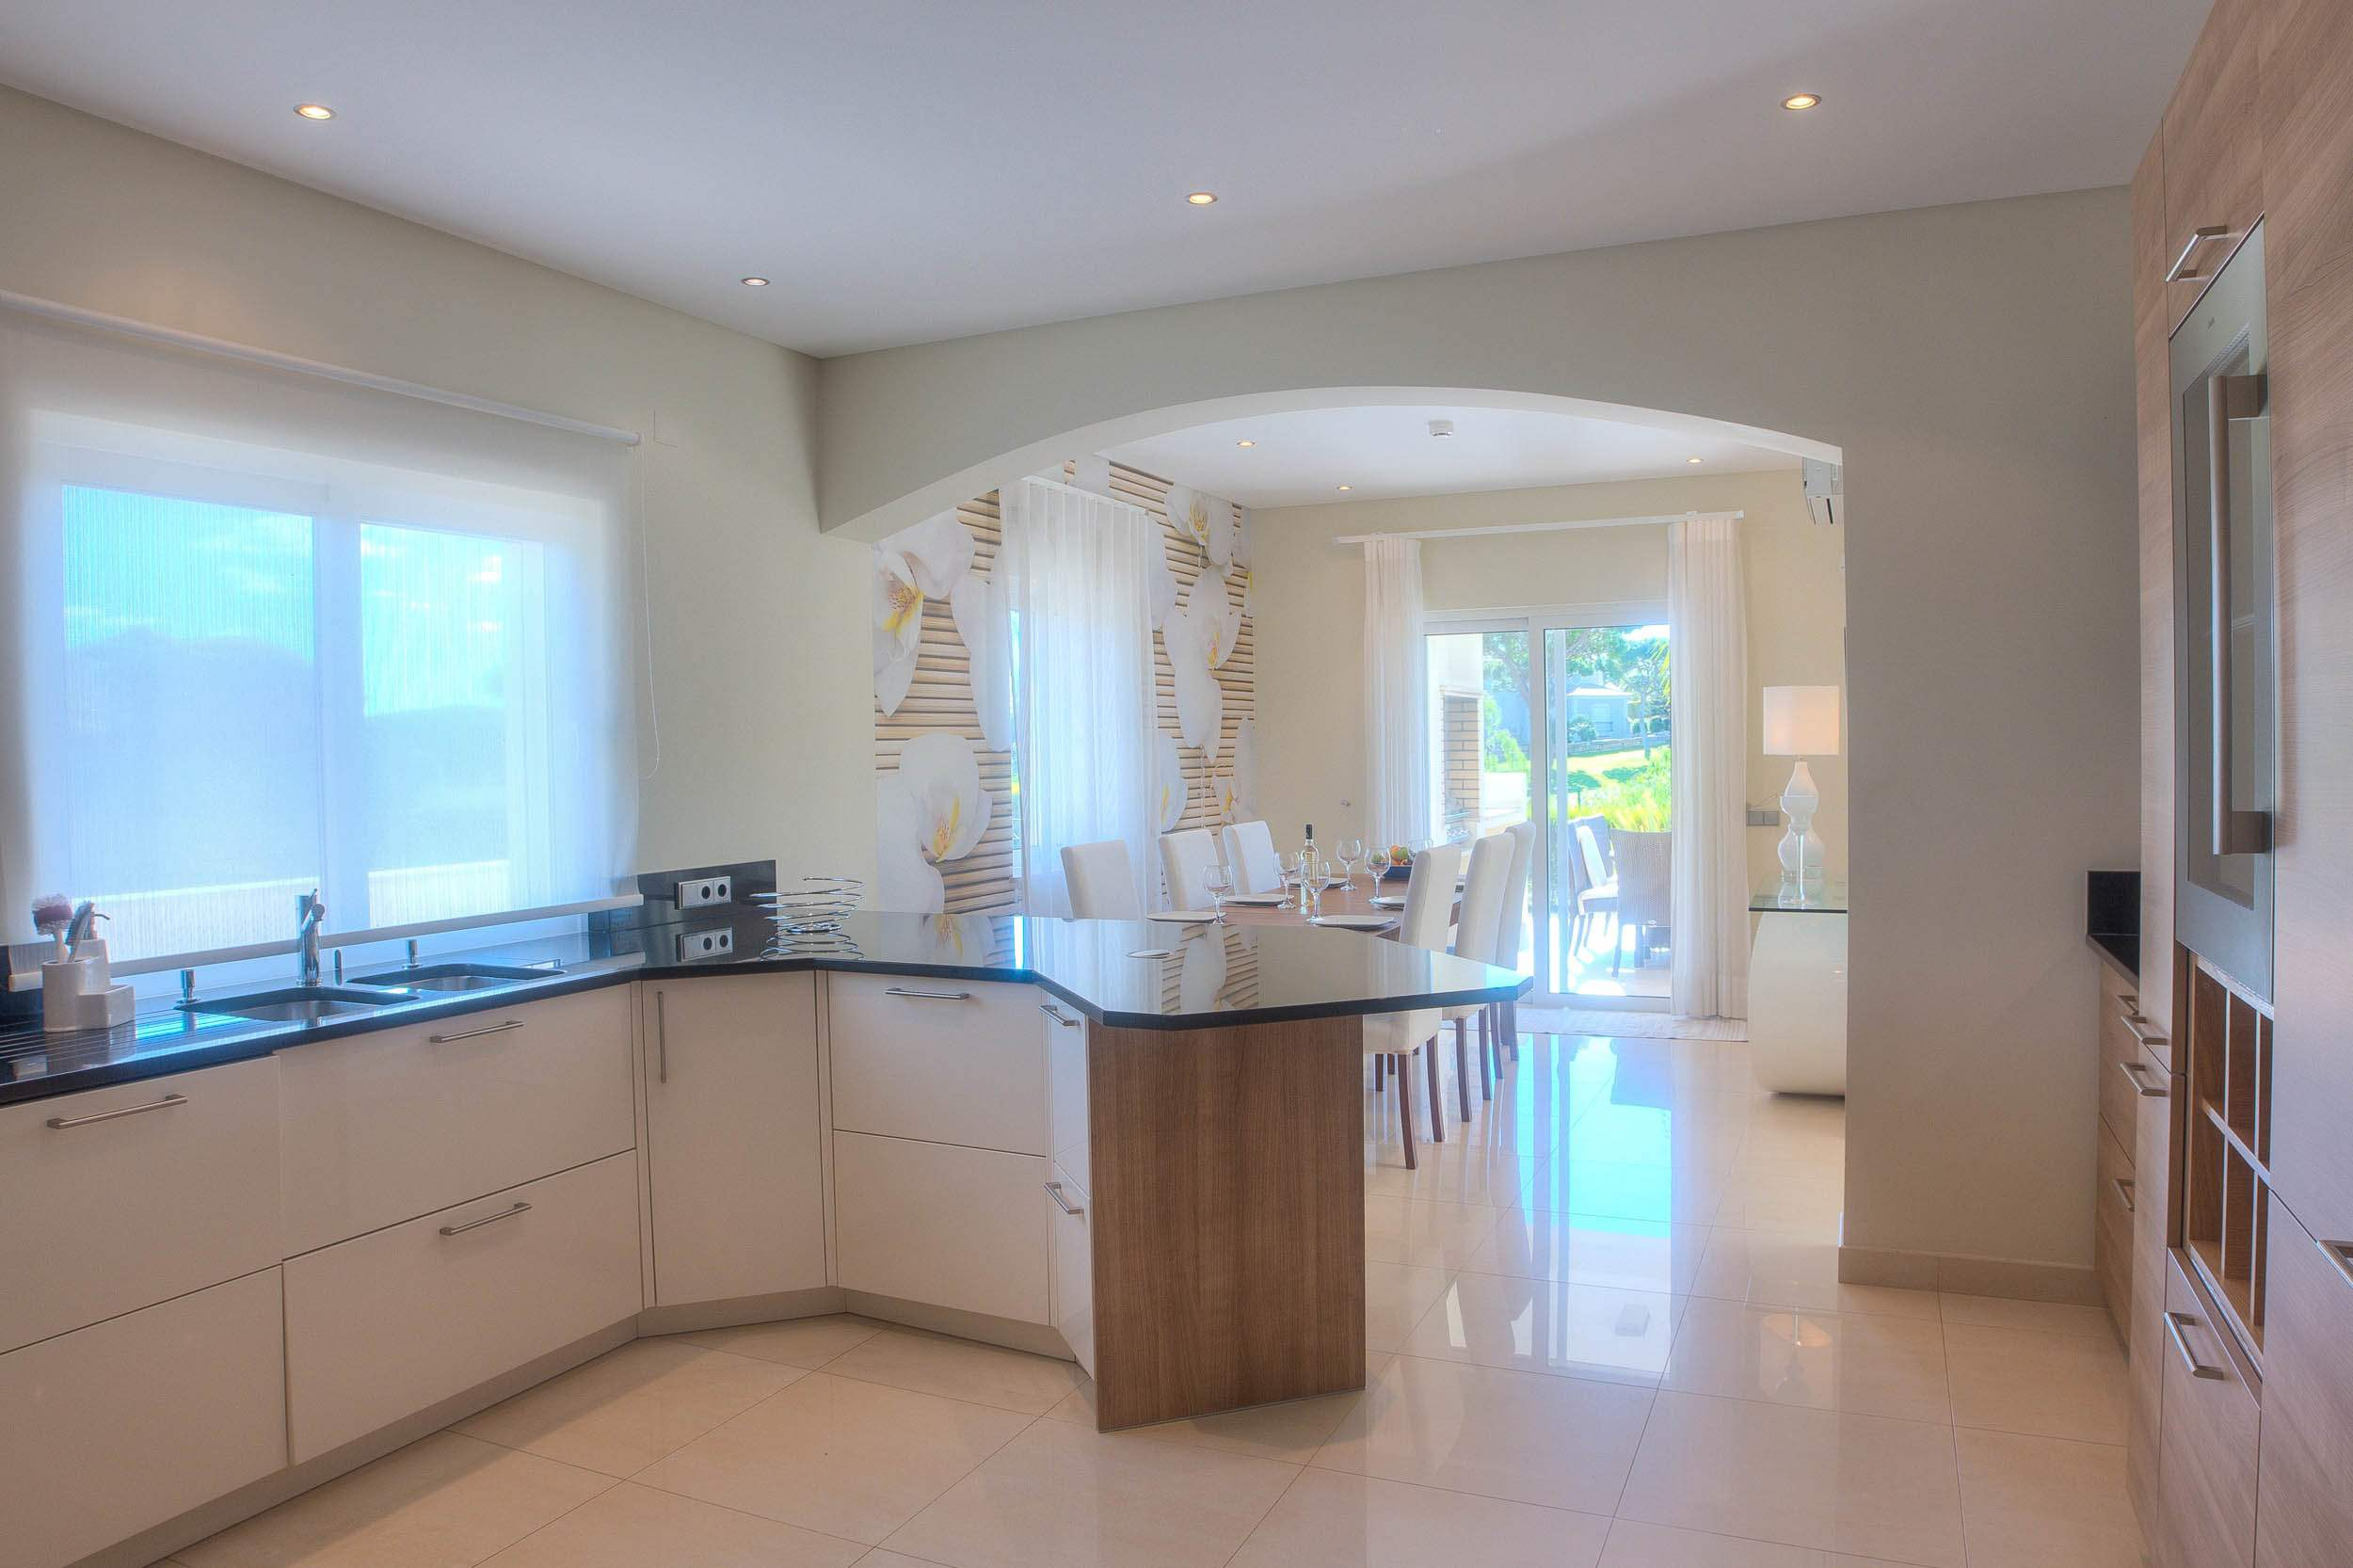 Villa Vida Doce, 6 bedroom villa in Vilamoura Area, Algarve Photo #6